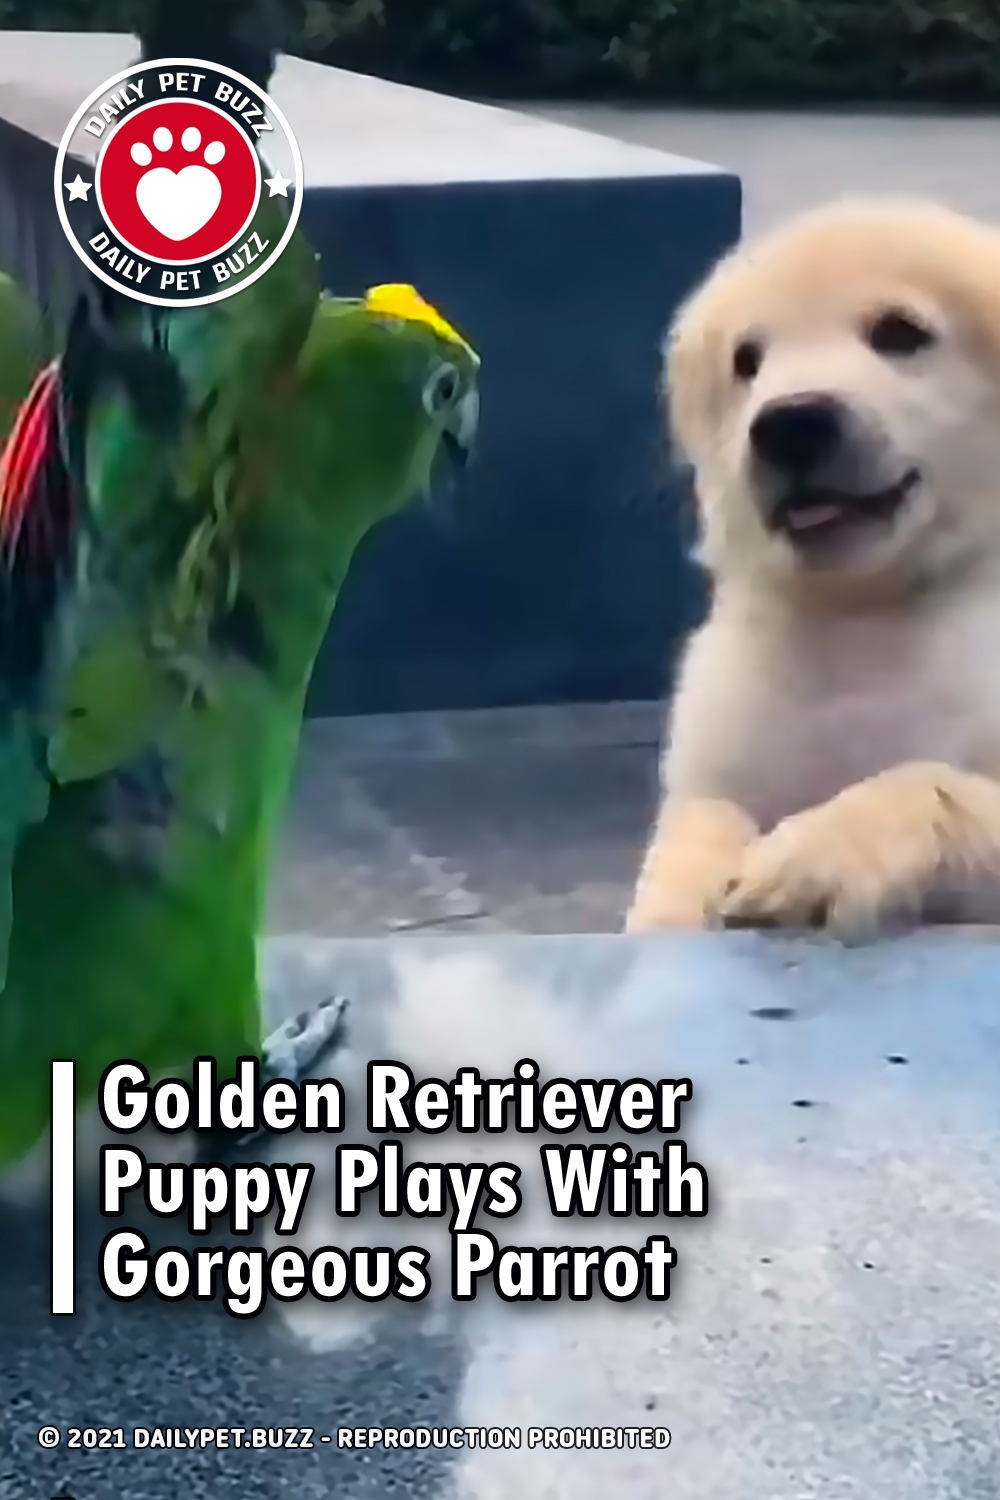 Golden Retriever Puppy Plays With Gorgeous Parrot